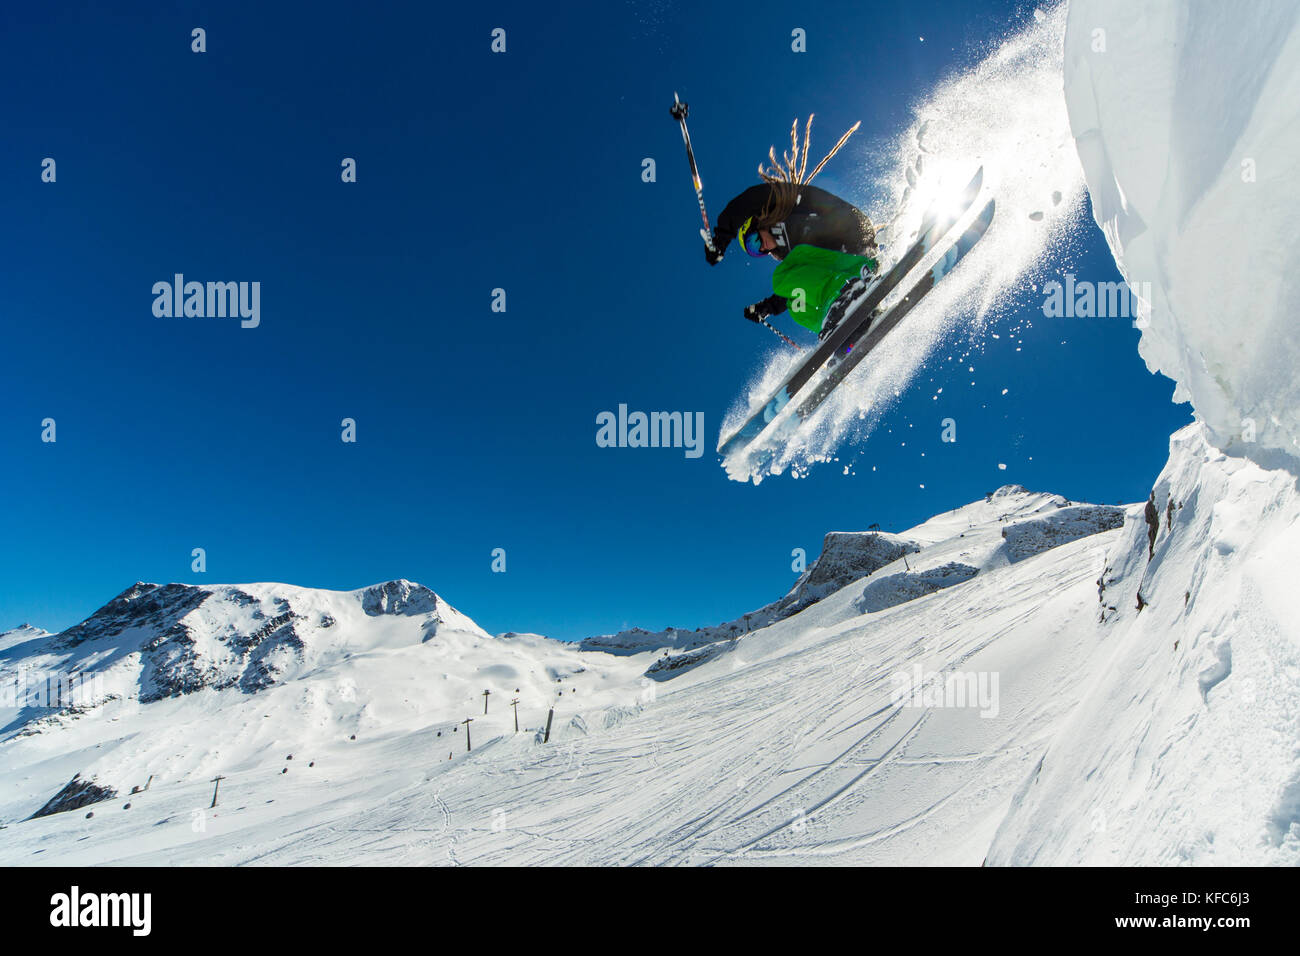 freeride skier jumping off the cliff - Stock Image